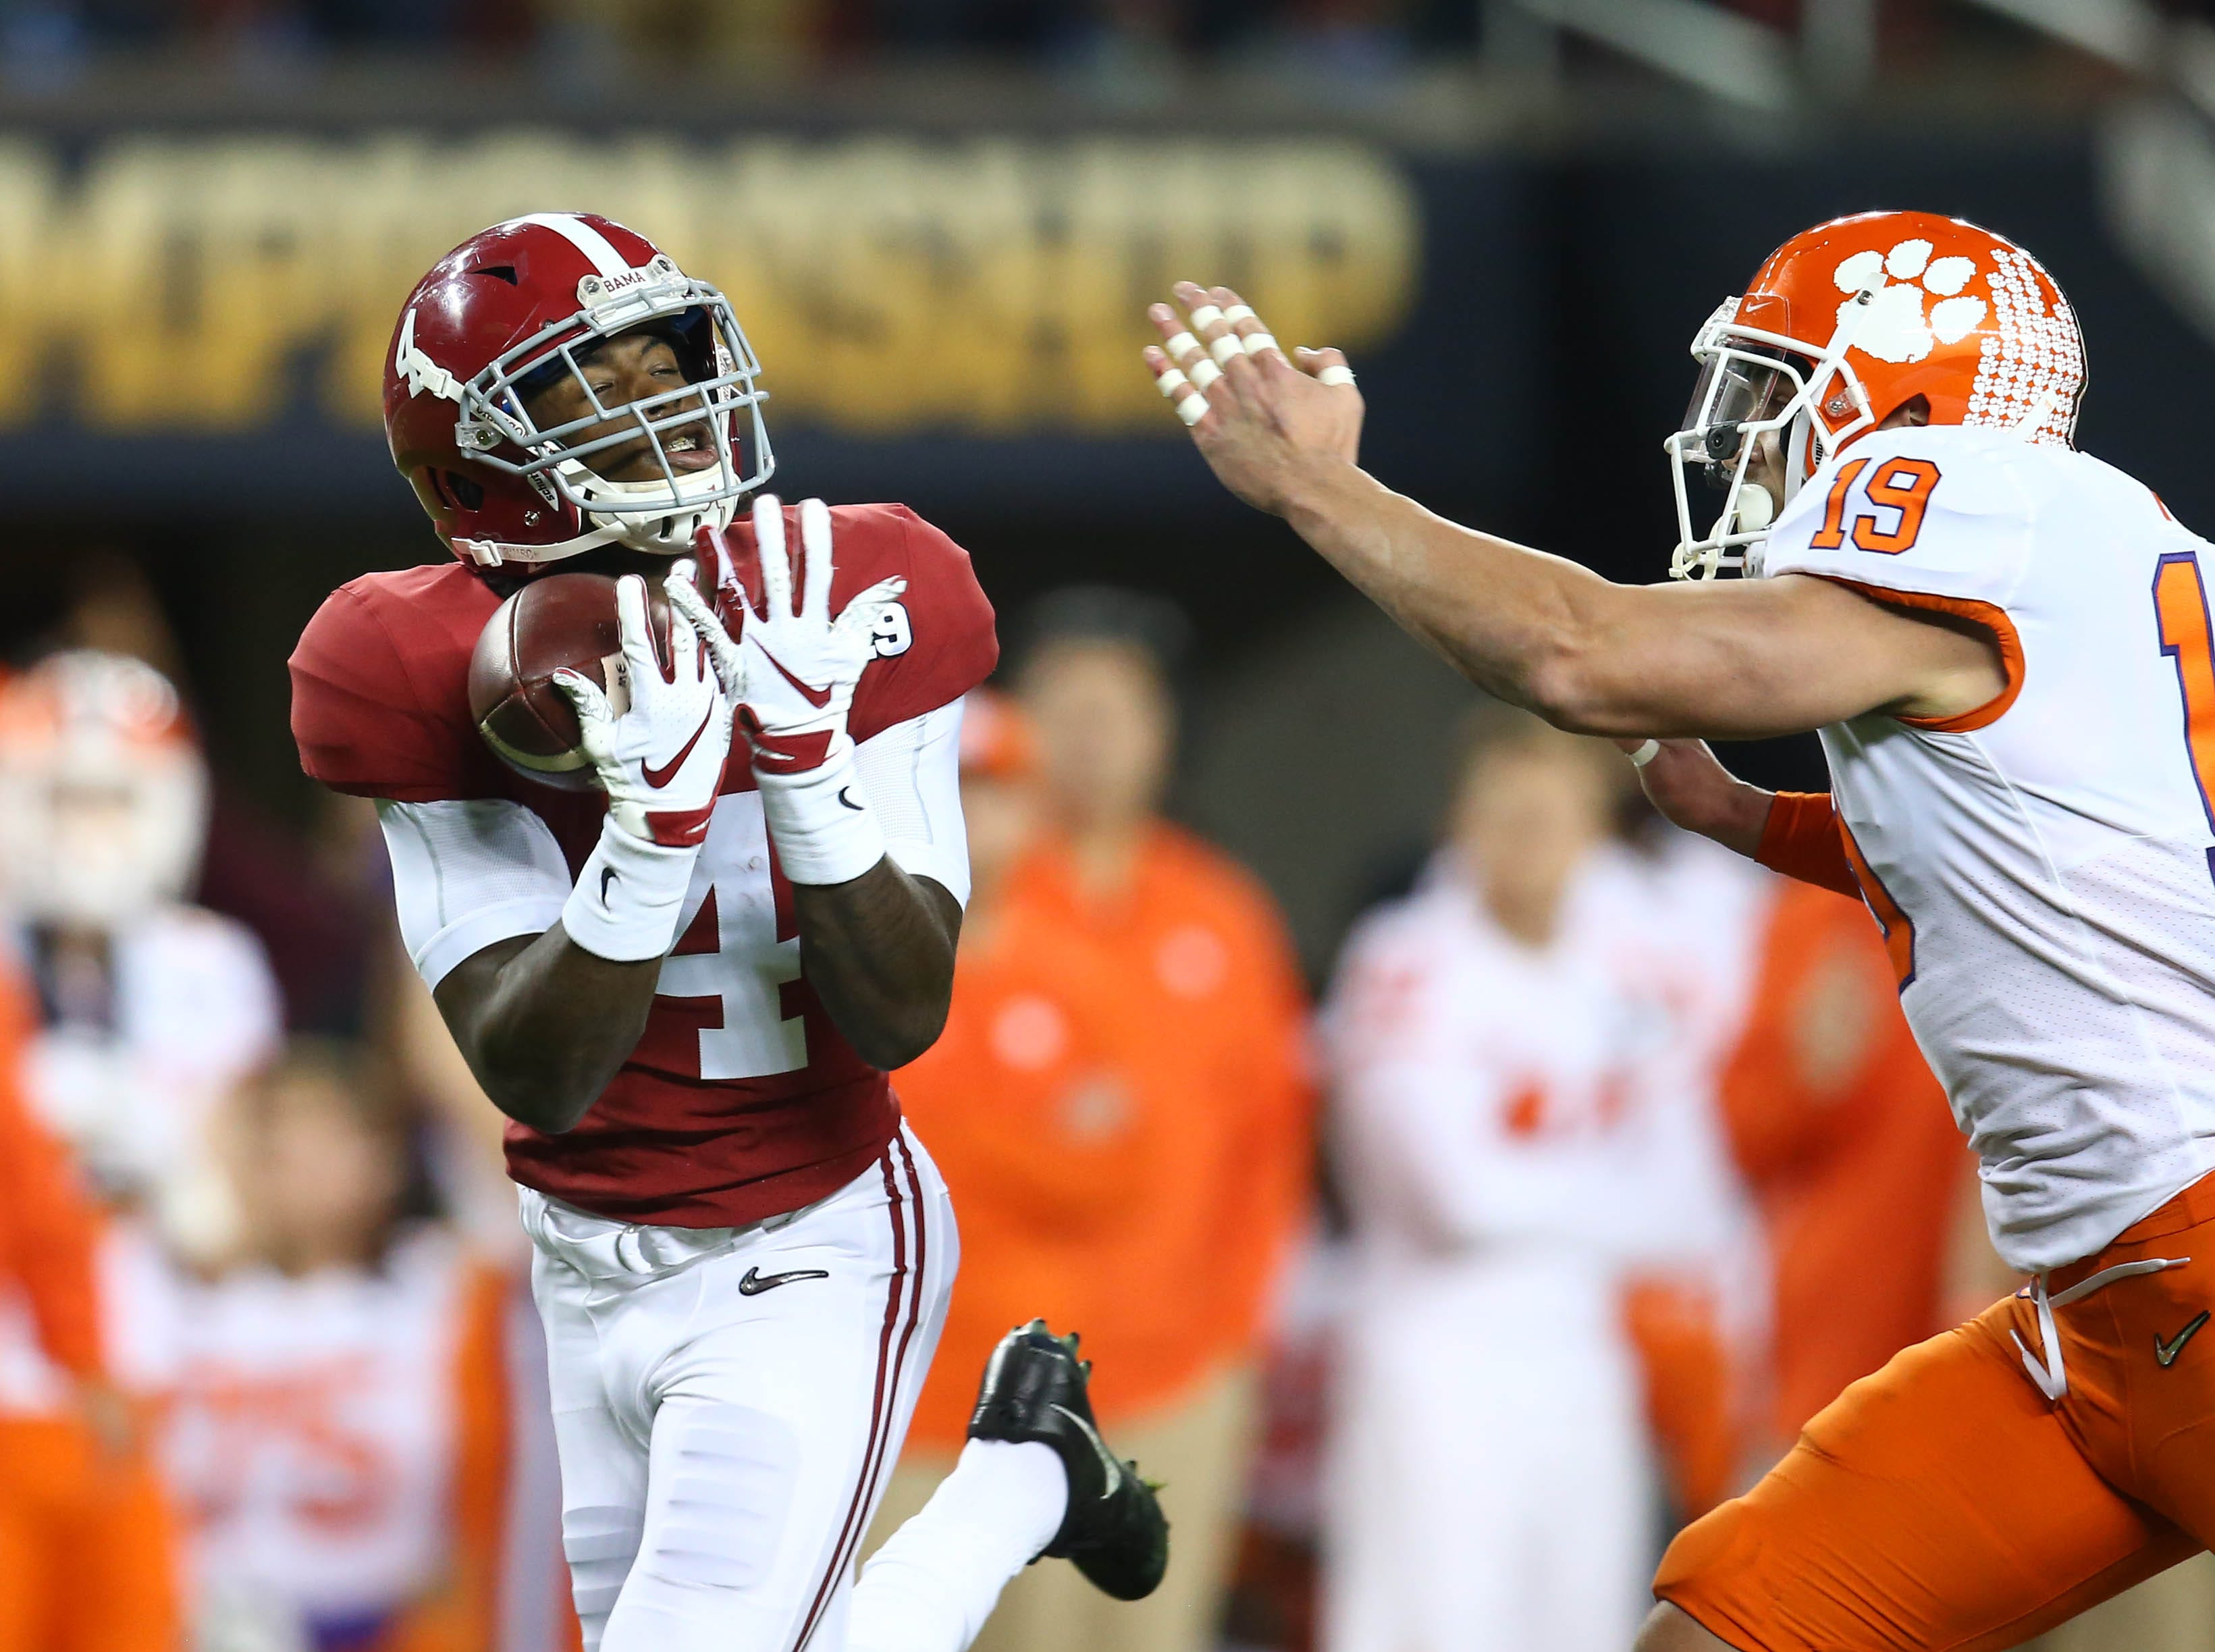 Jan 7, 2019; Santa Clara, CA, USA; Alabama Crimson Tide wide receiver Jerry Jeudy (4) catches a touchdown pass against Clemson Tigers safety Tanner Muse (19) during the 2019 College Football Playoff Championship game at Levi's Stadium. Mandatory Credit: Mark J. Rebilas-USA TODAY Sports